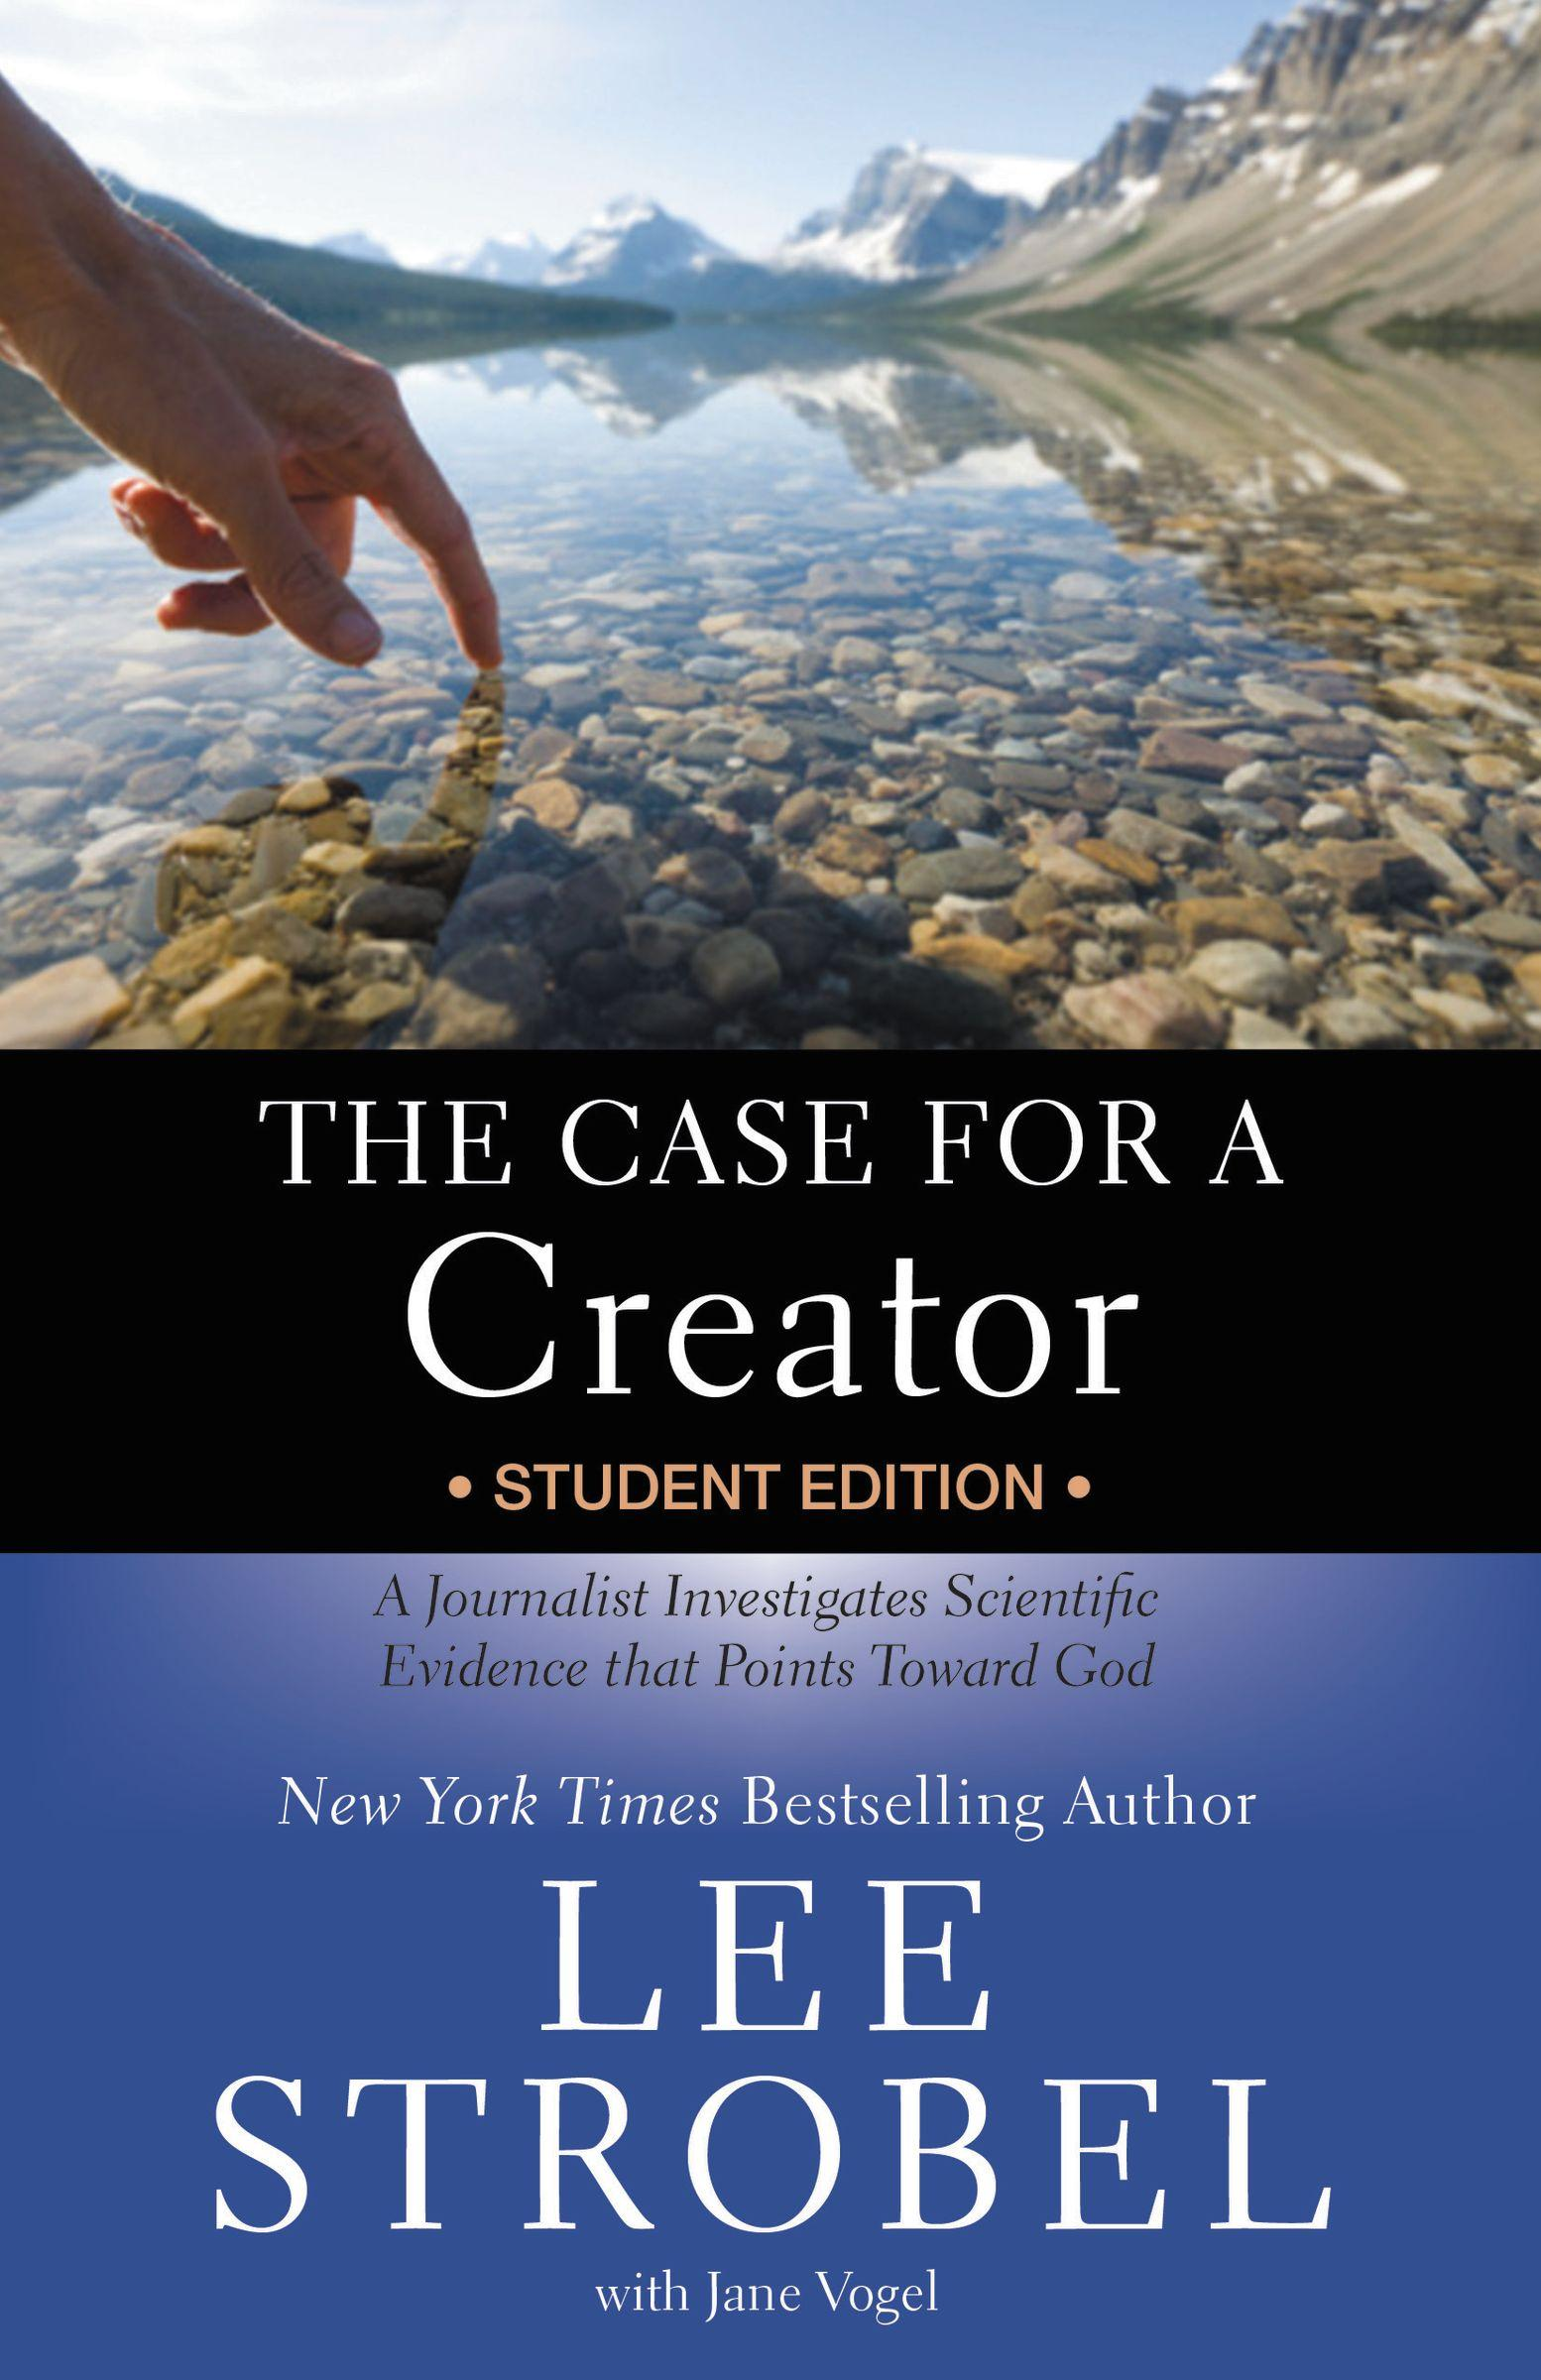 The Case For A Creator - Student Edition: A Journalist Investigates Scientific Evidence That Points Toward God by Lee Strobel Jane Vogel, ISBN: 9780310835240